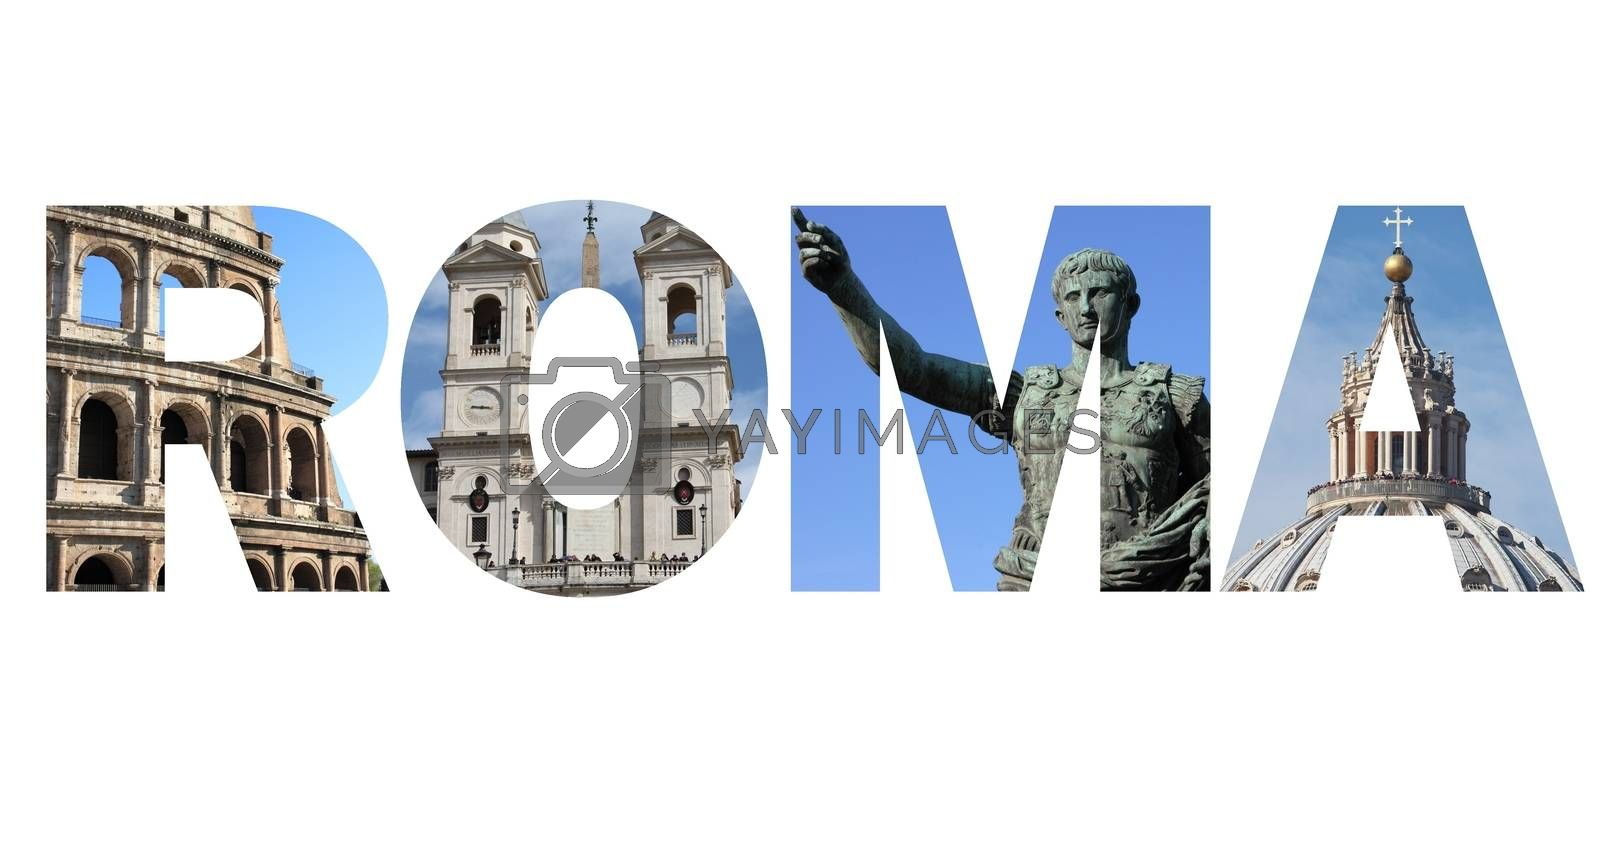 Rome text by alessandro0770